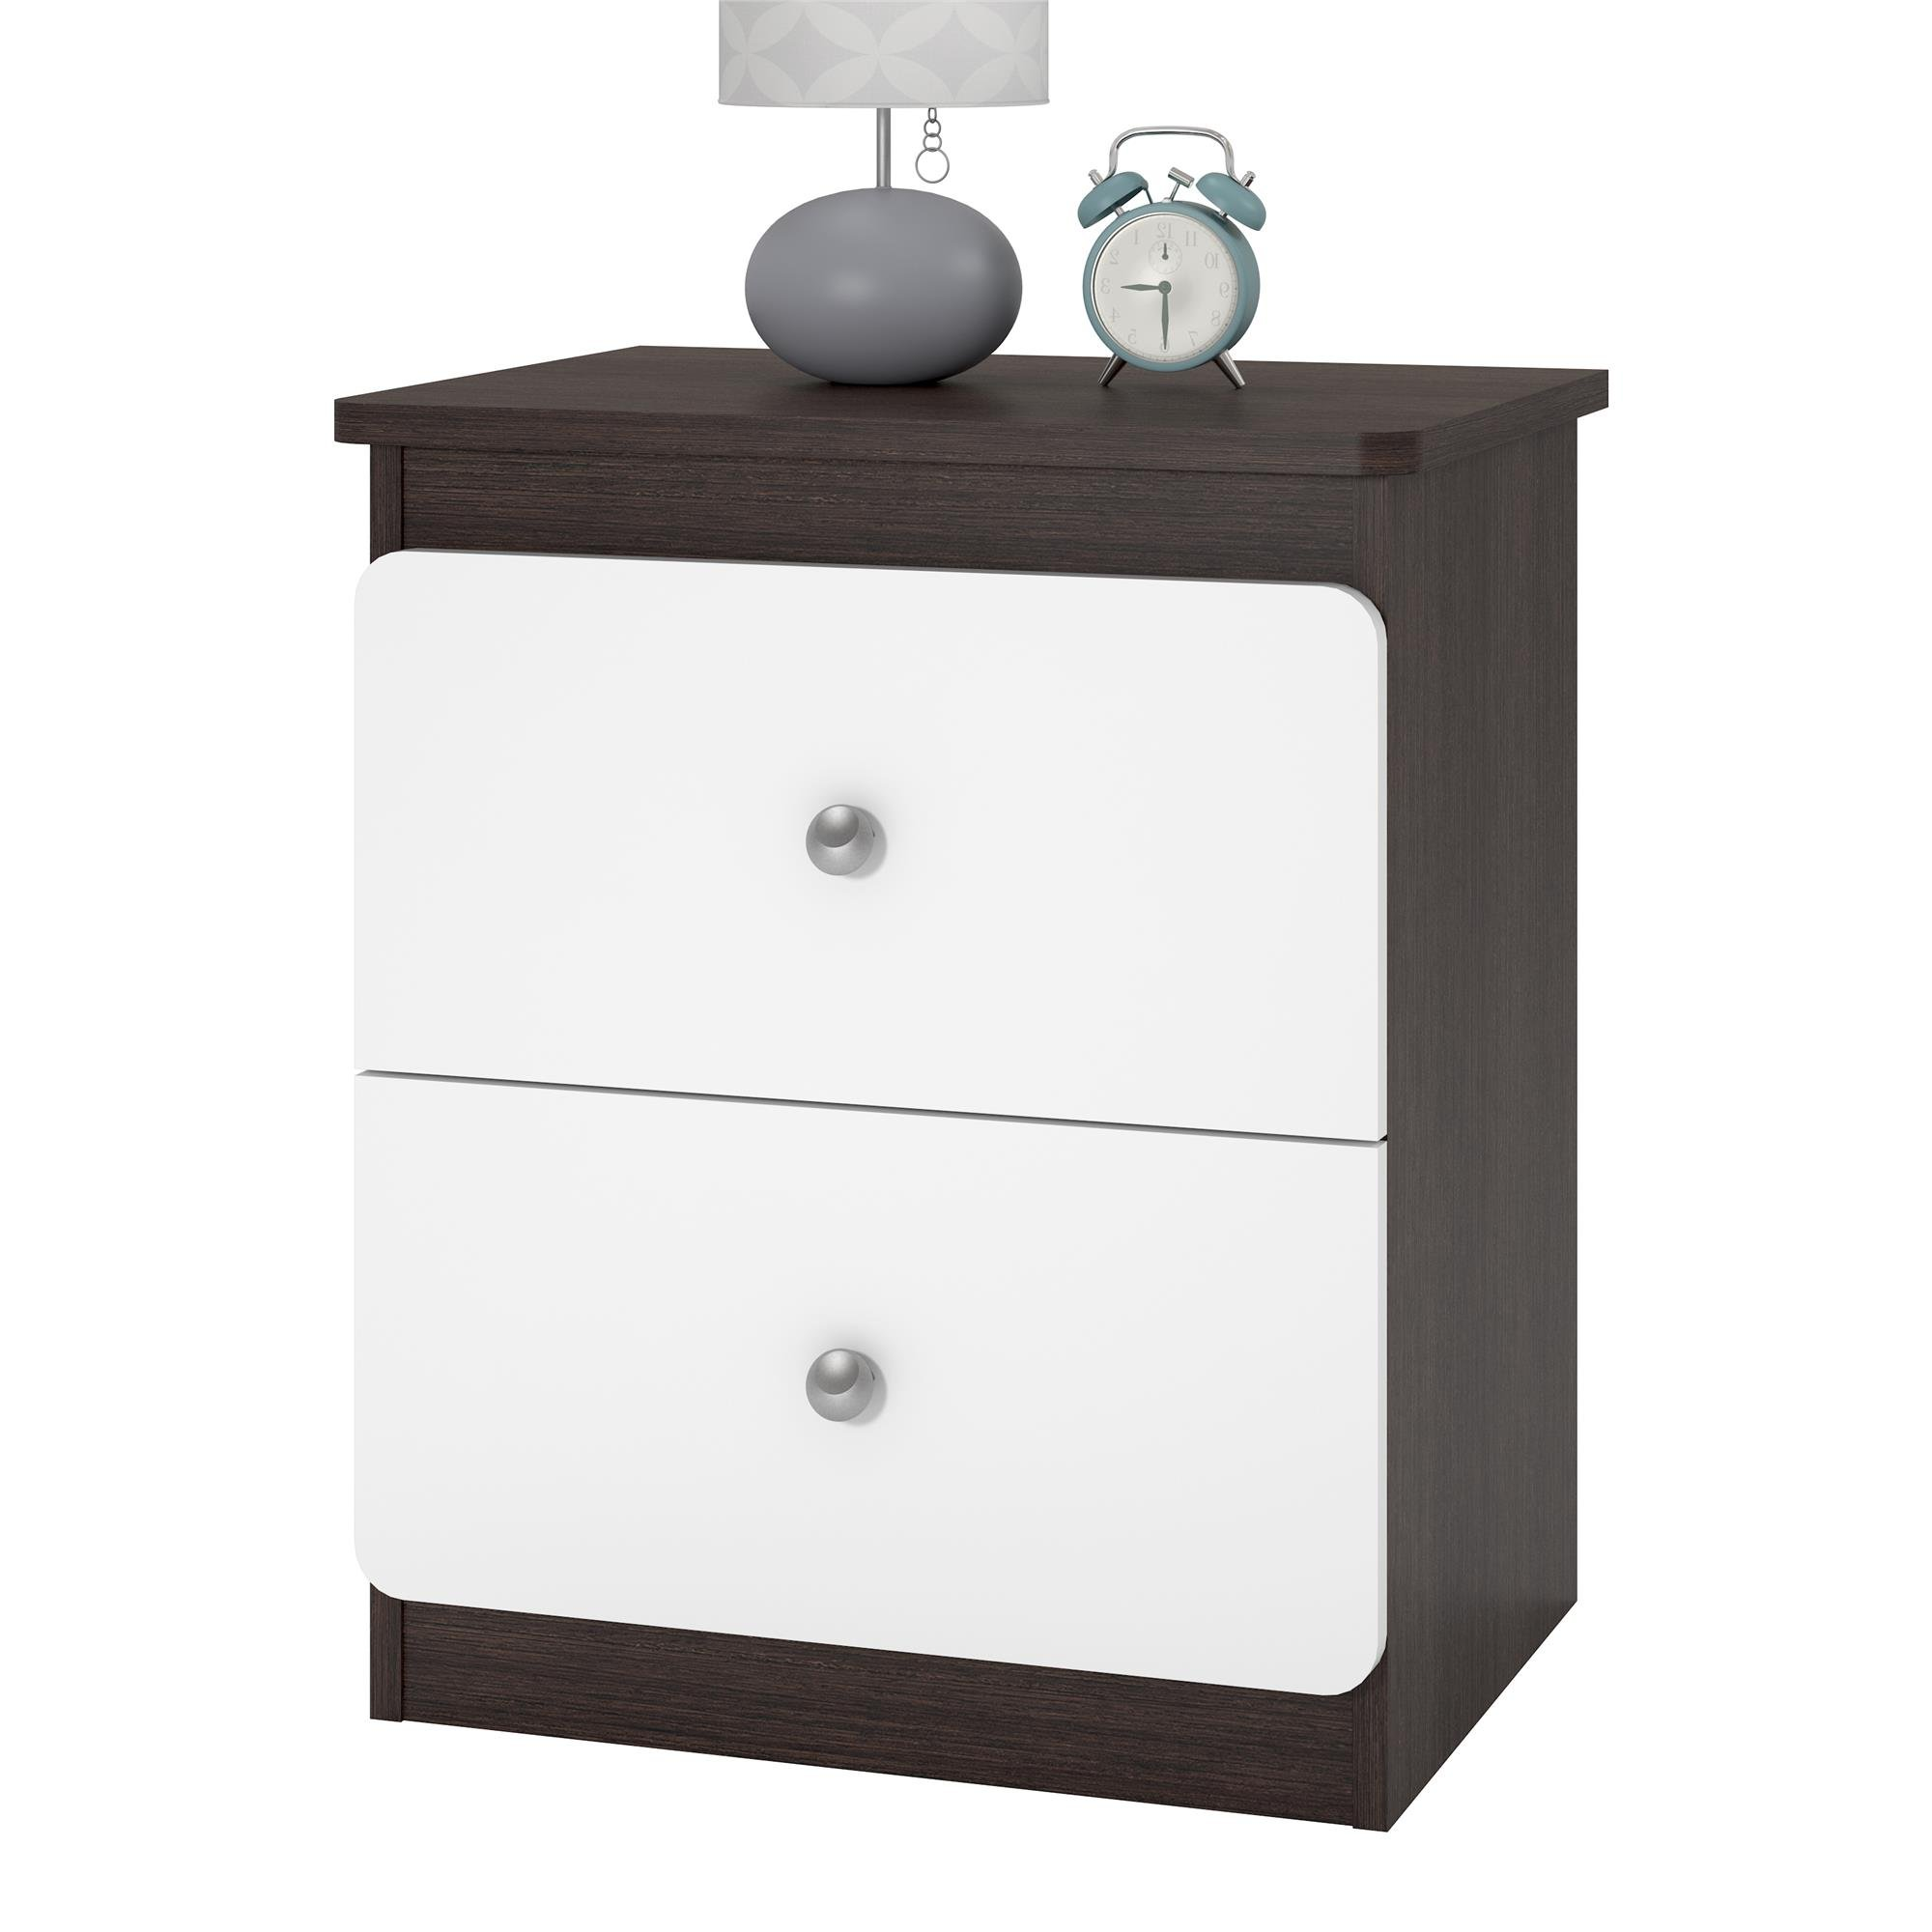 Ameriwood Home 5953216COM Willow Nightstand, Espresso/White